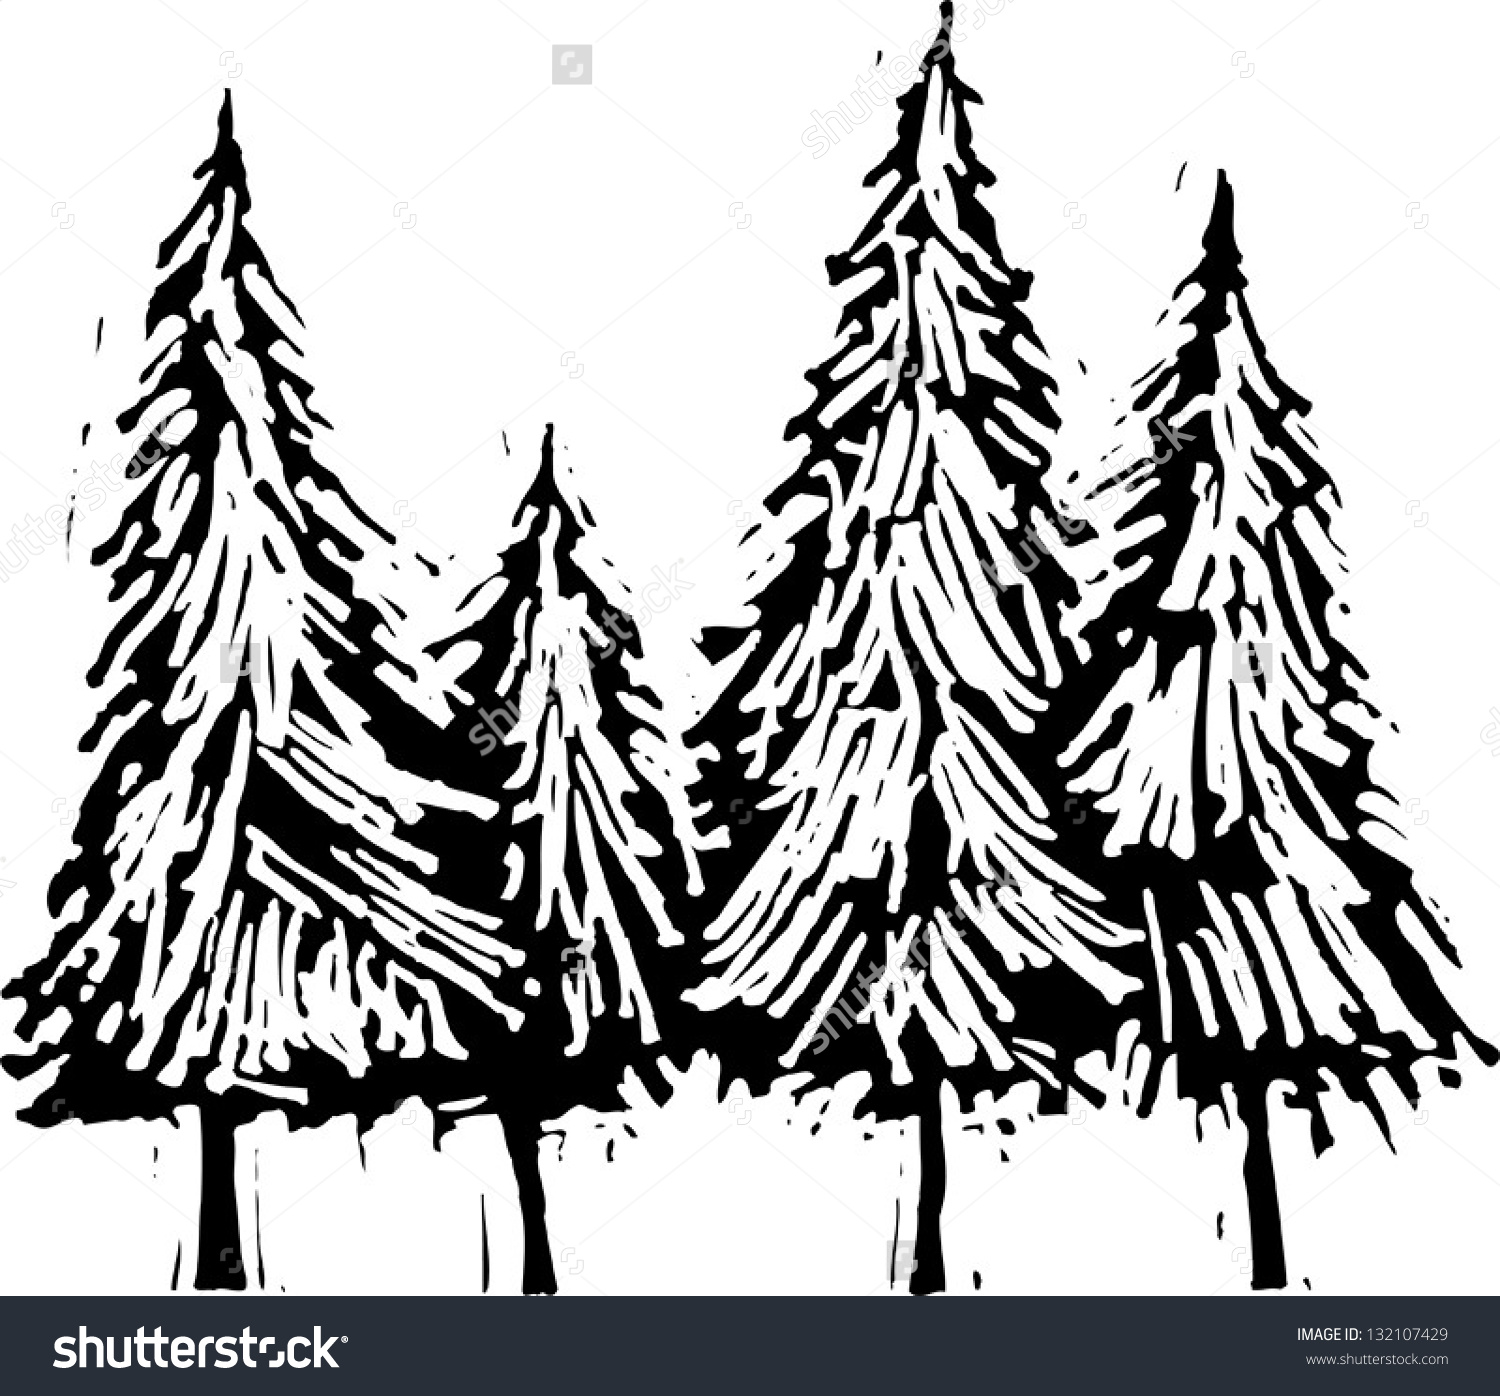 Black White Vector Illustration Pine Trees Stock Vector 132107429.